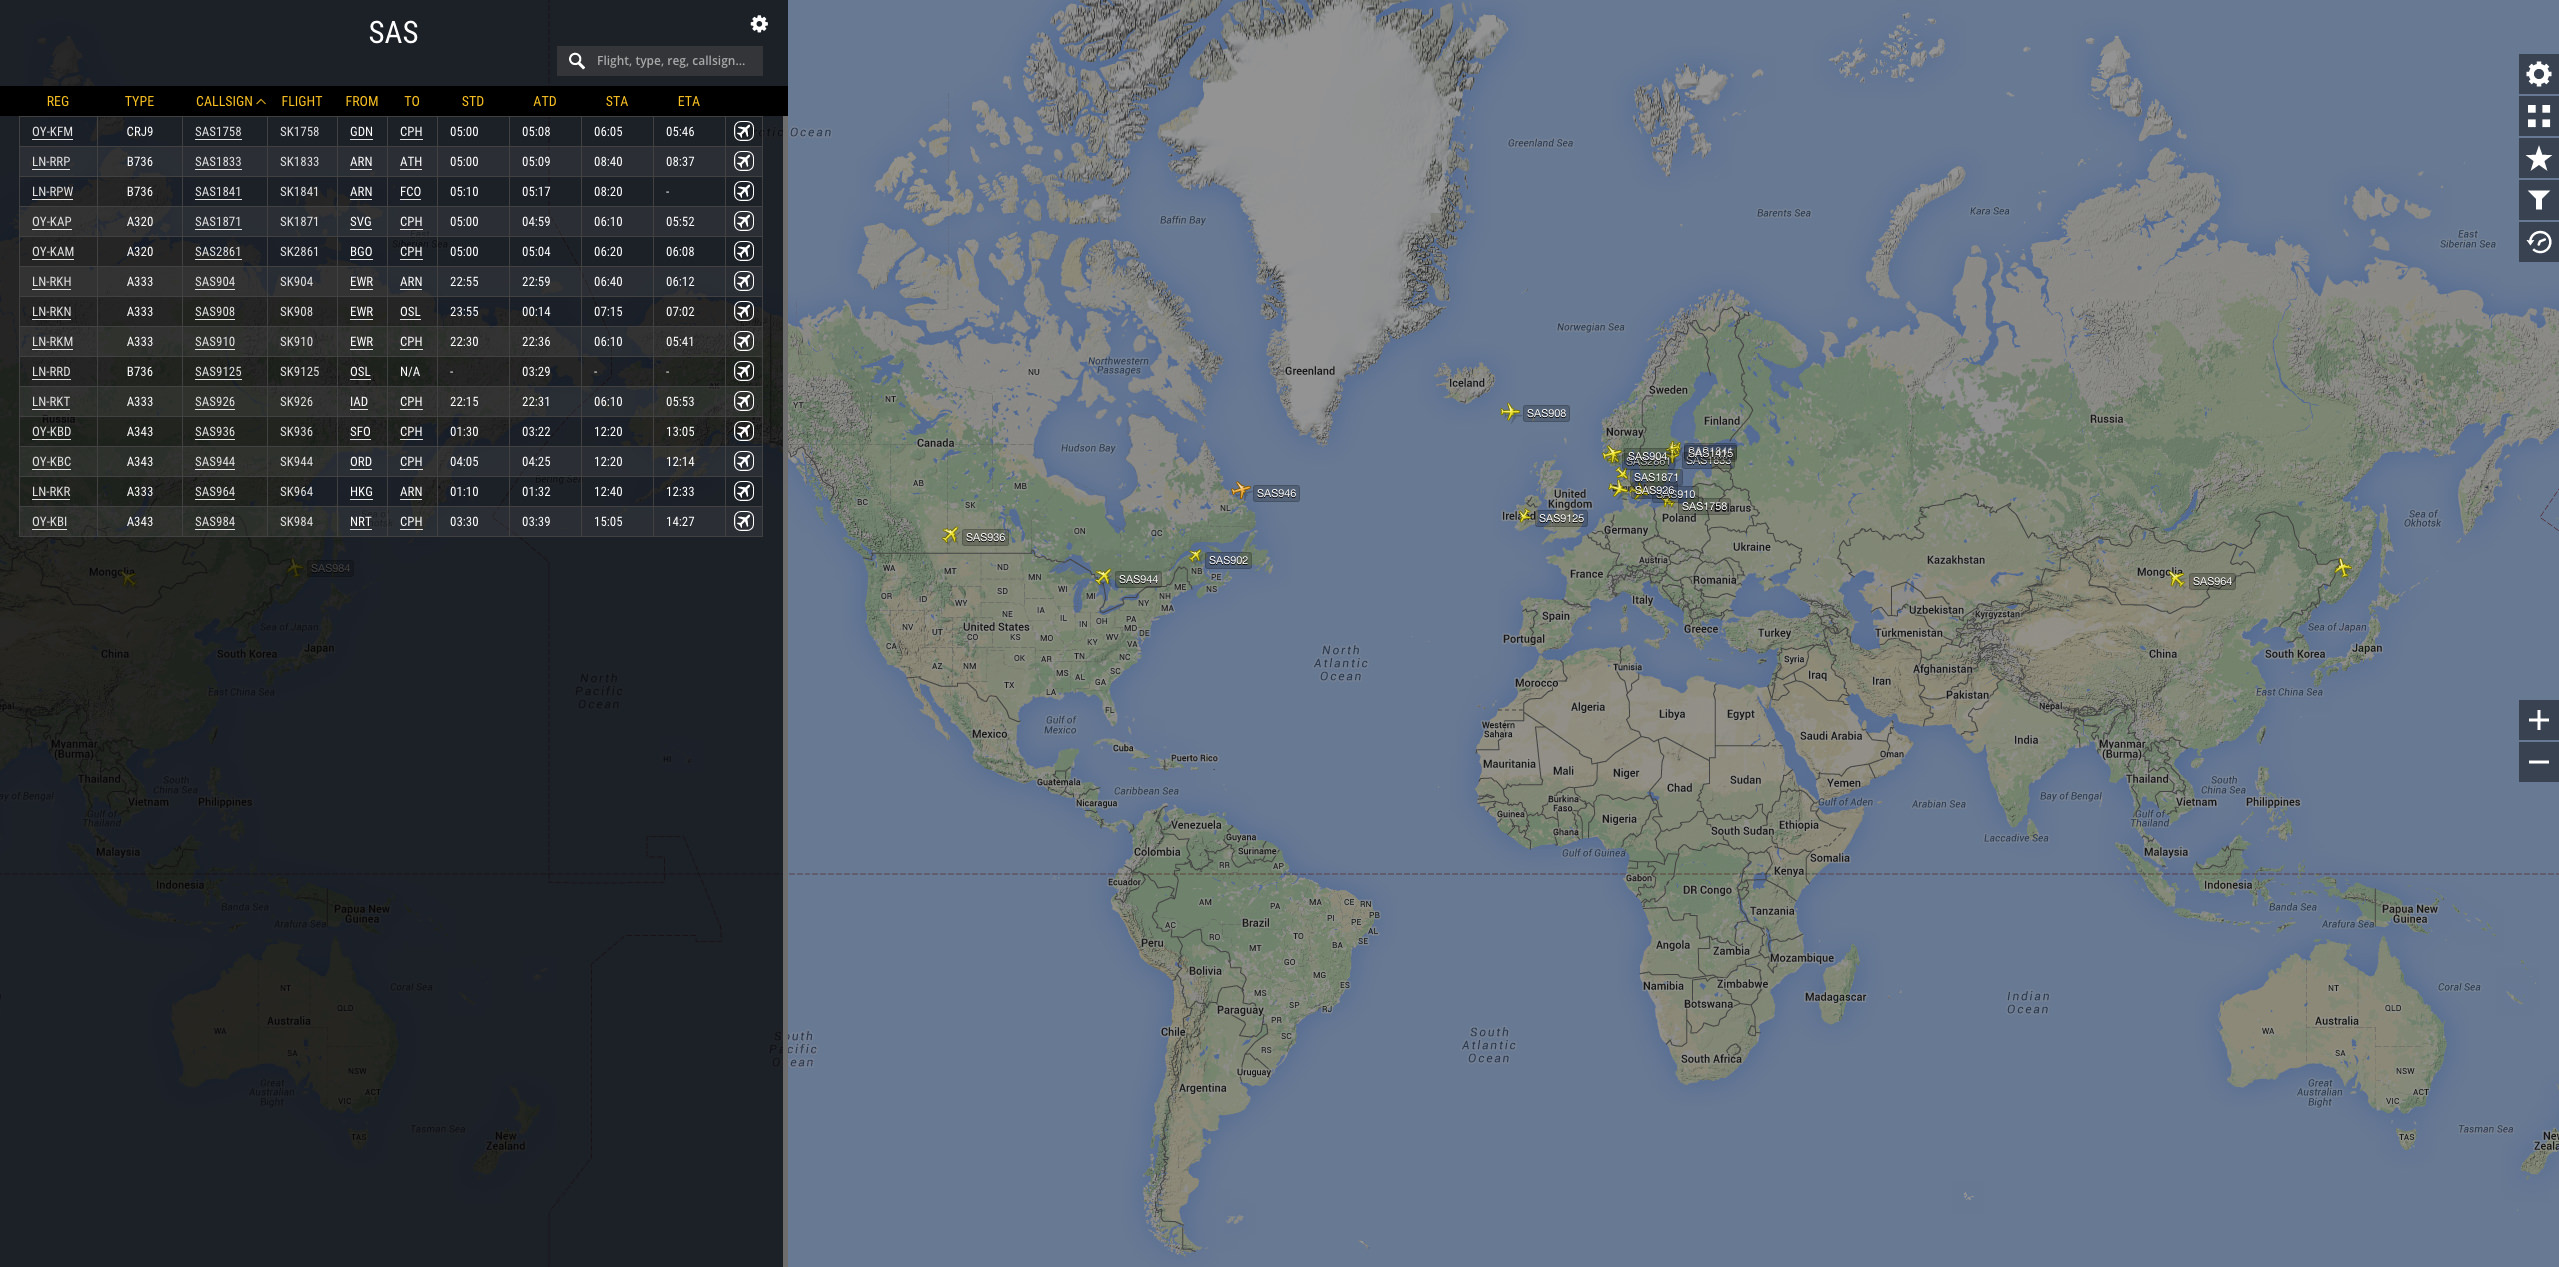 Our new fleet view showing active SAS flights.